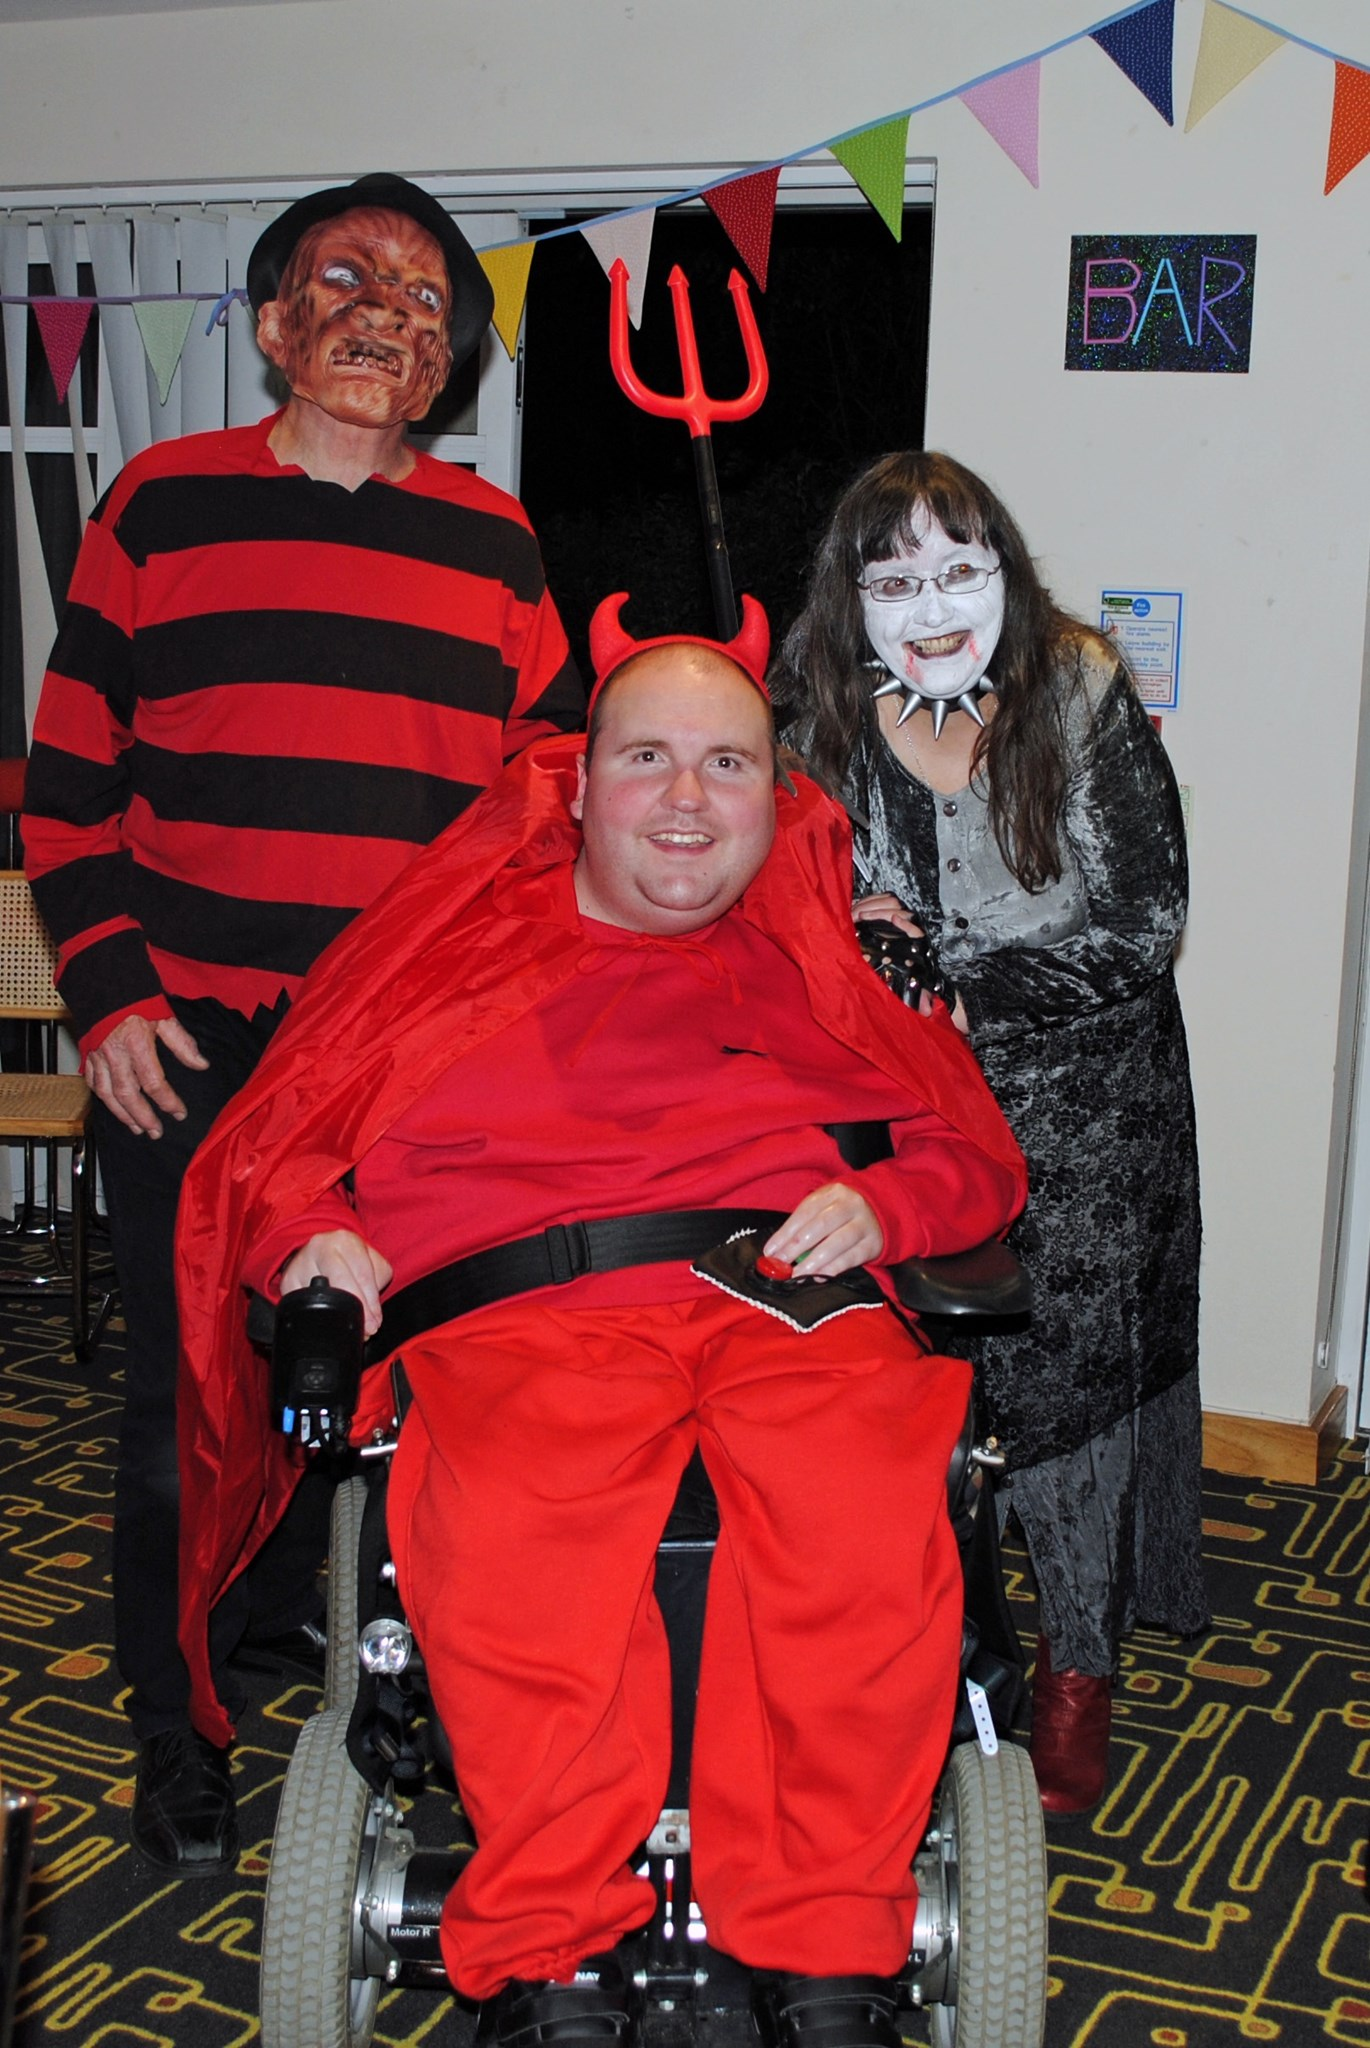 Halloween 2014 at Douglas House Halloween quiz. James last DH event before we lost him.